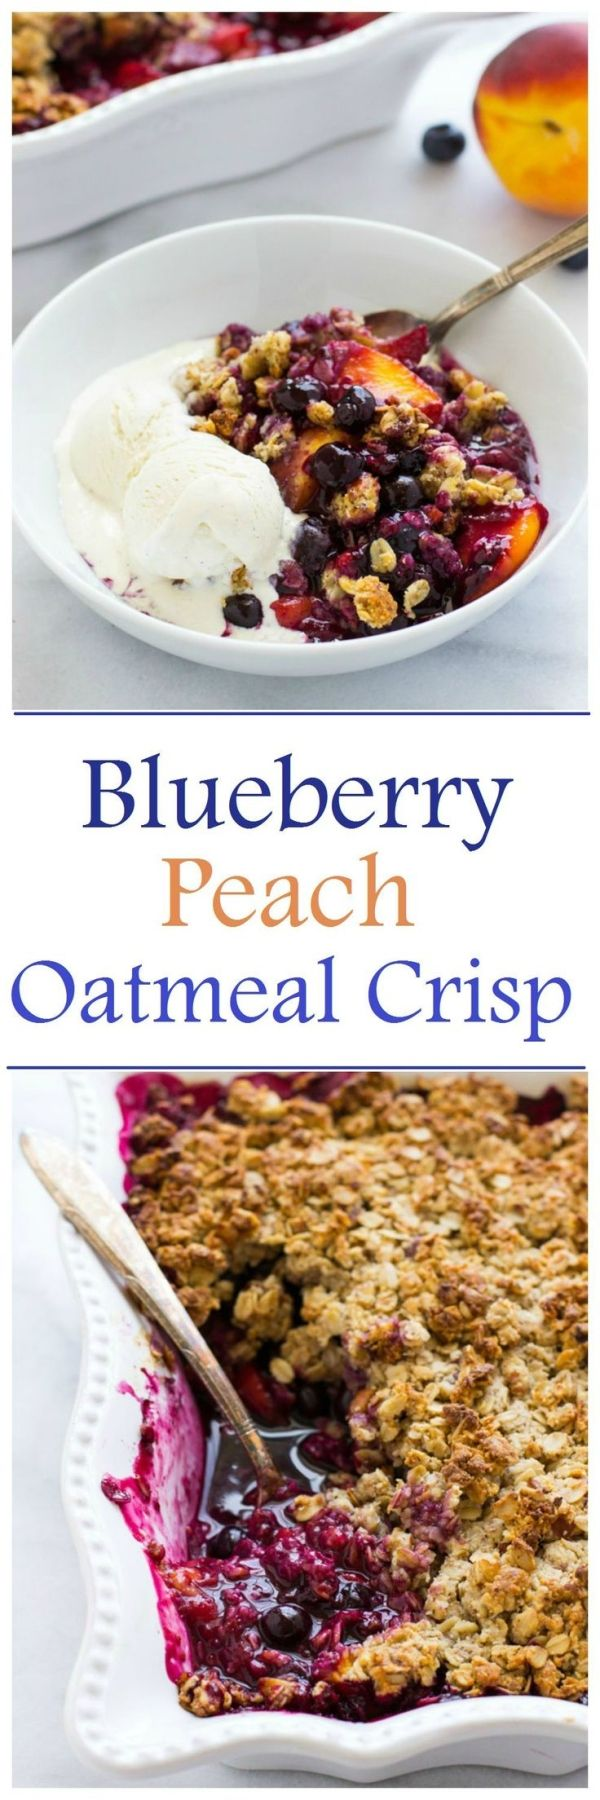 Blueberry Peach Oatmeal Crisp- serve with vanilla bean ice cream for the best summer dessert EVER! #glutenfree #refinedsugarfree by bianca